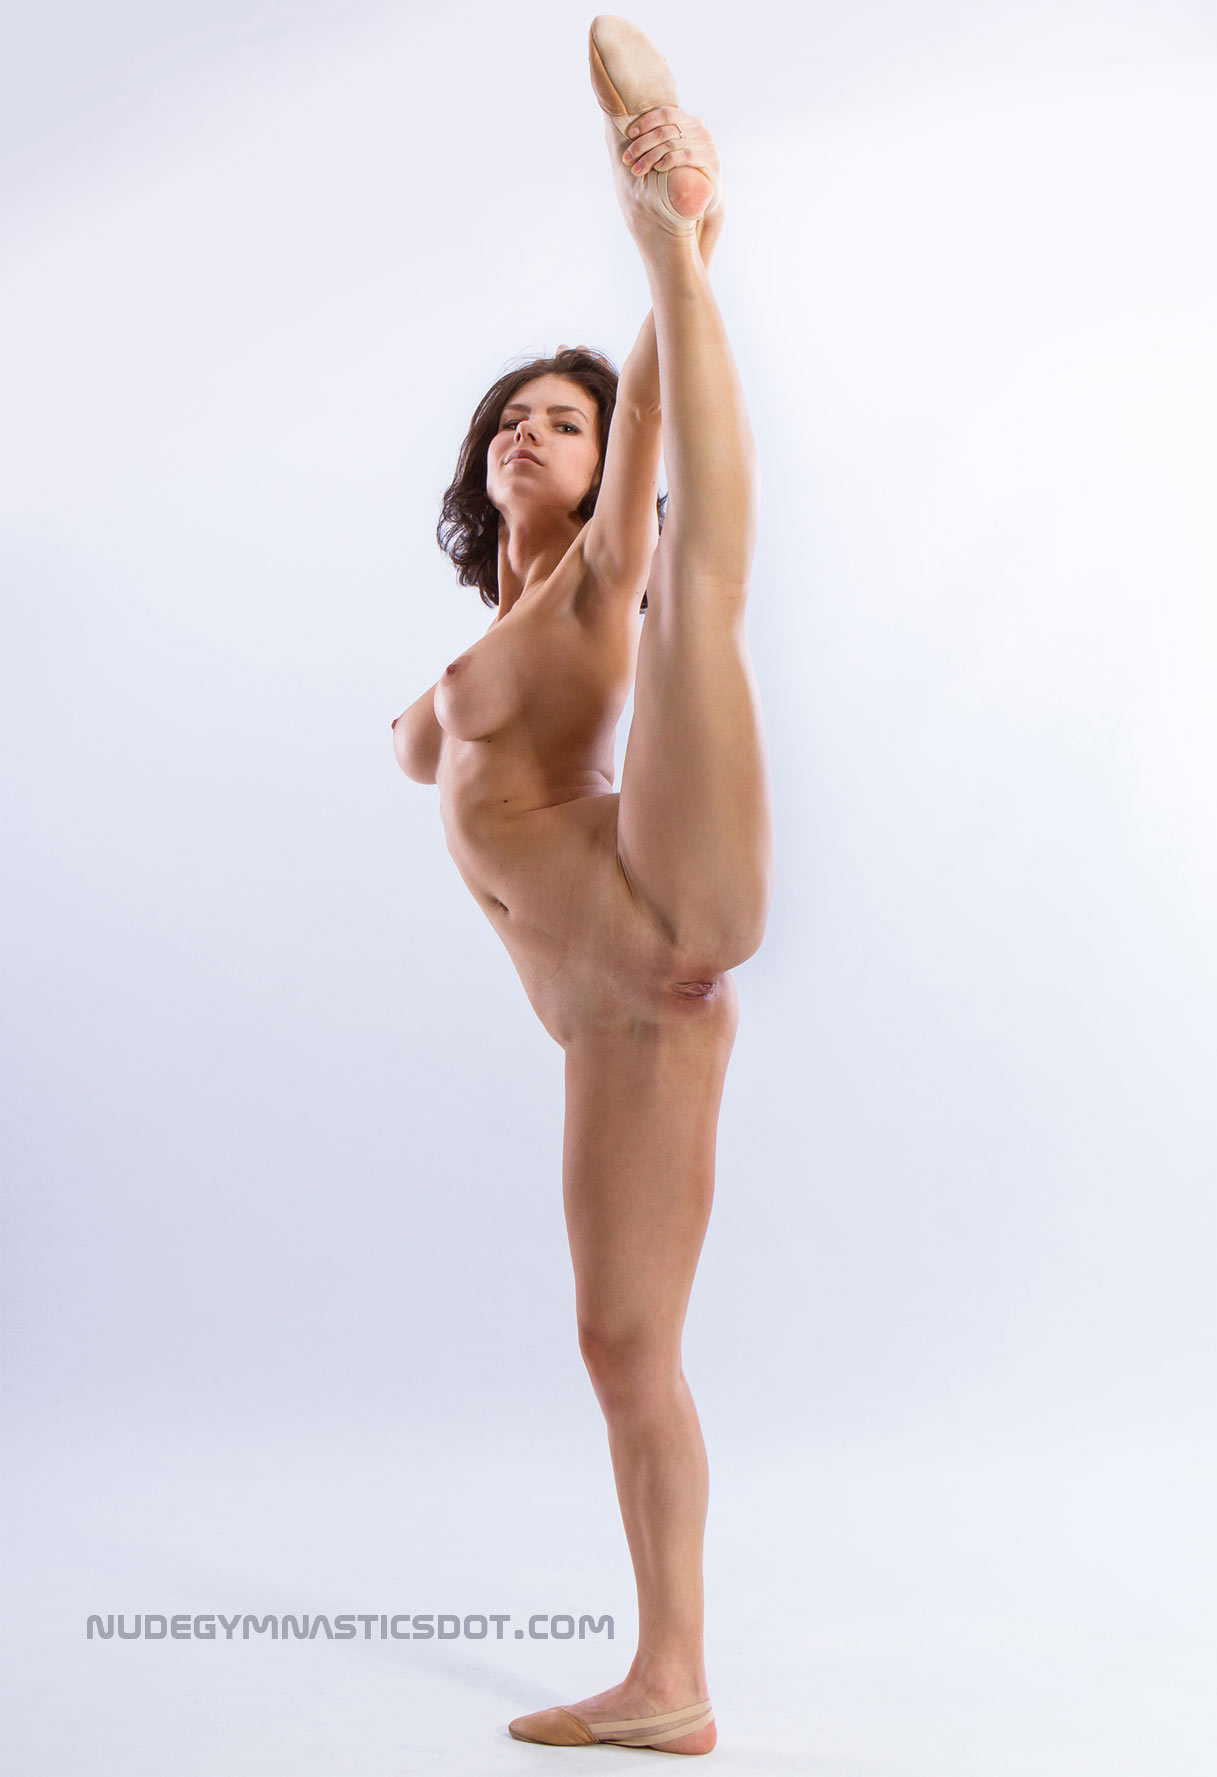 Naked Gymnast and Contortionist Girls